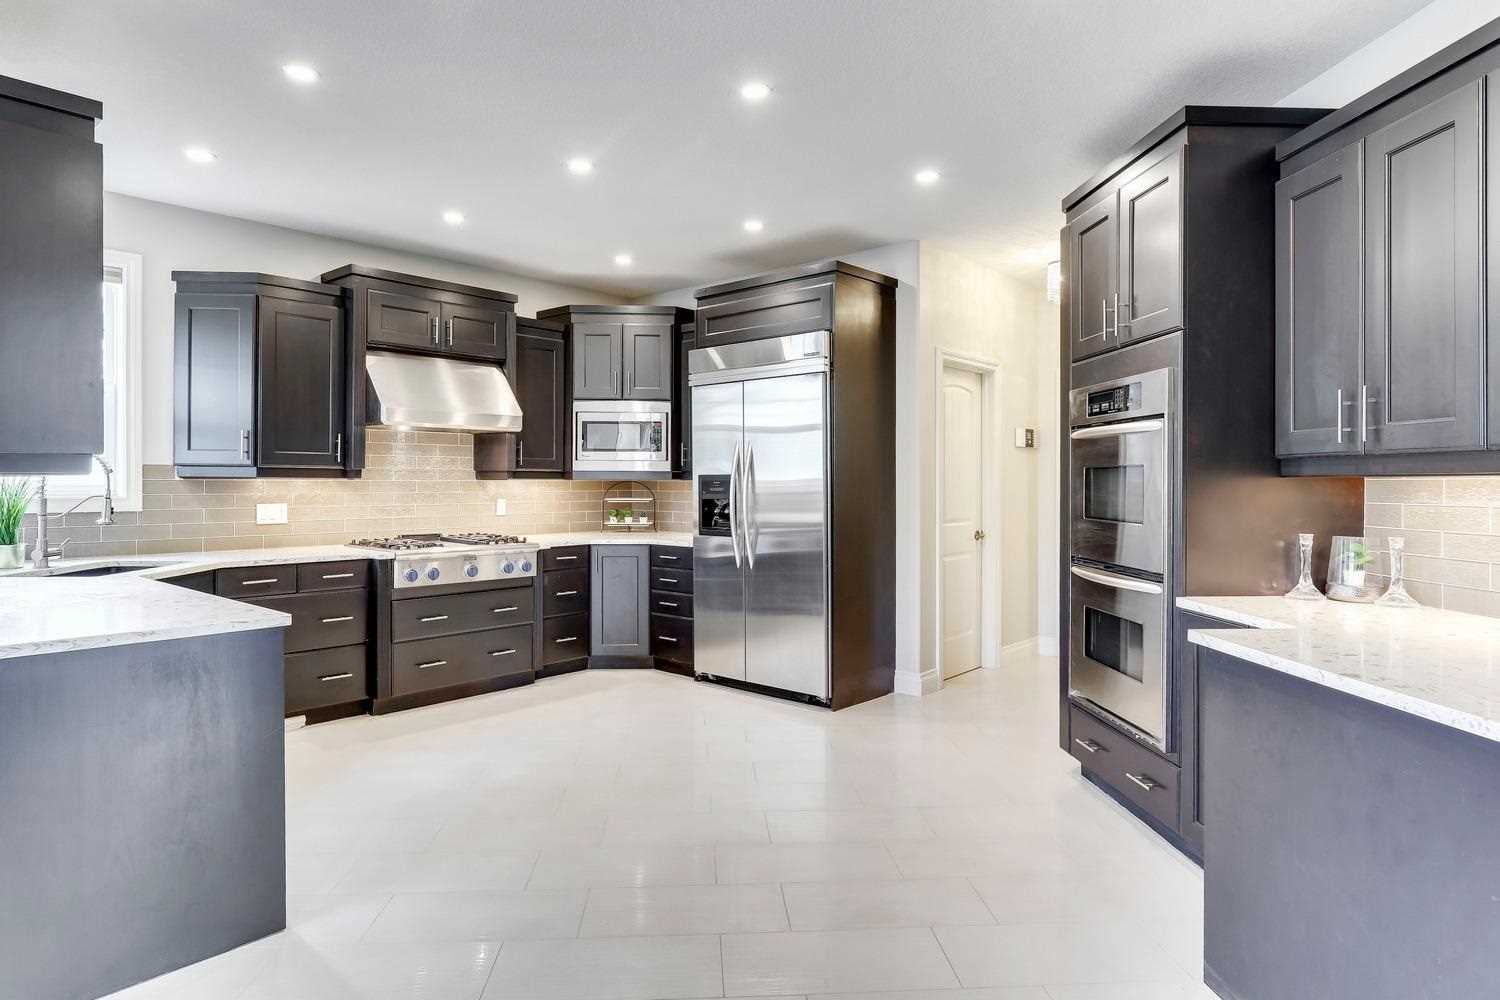 Kitchen with white ceiling and tile floor; dark brown cupboards and cabinets